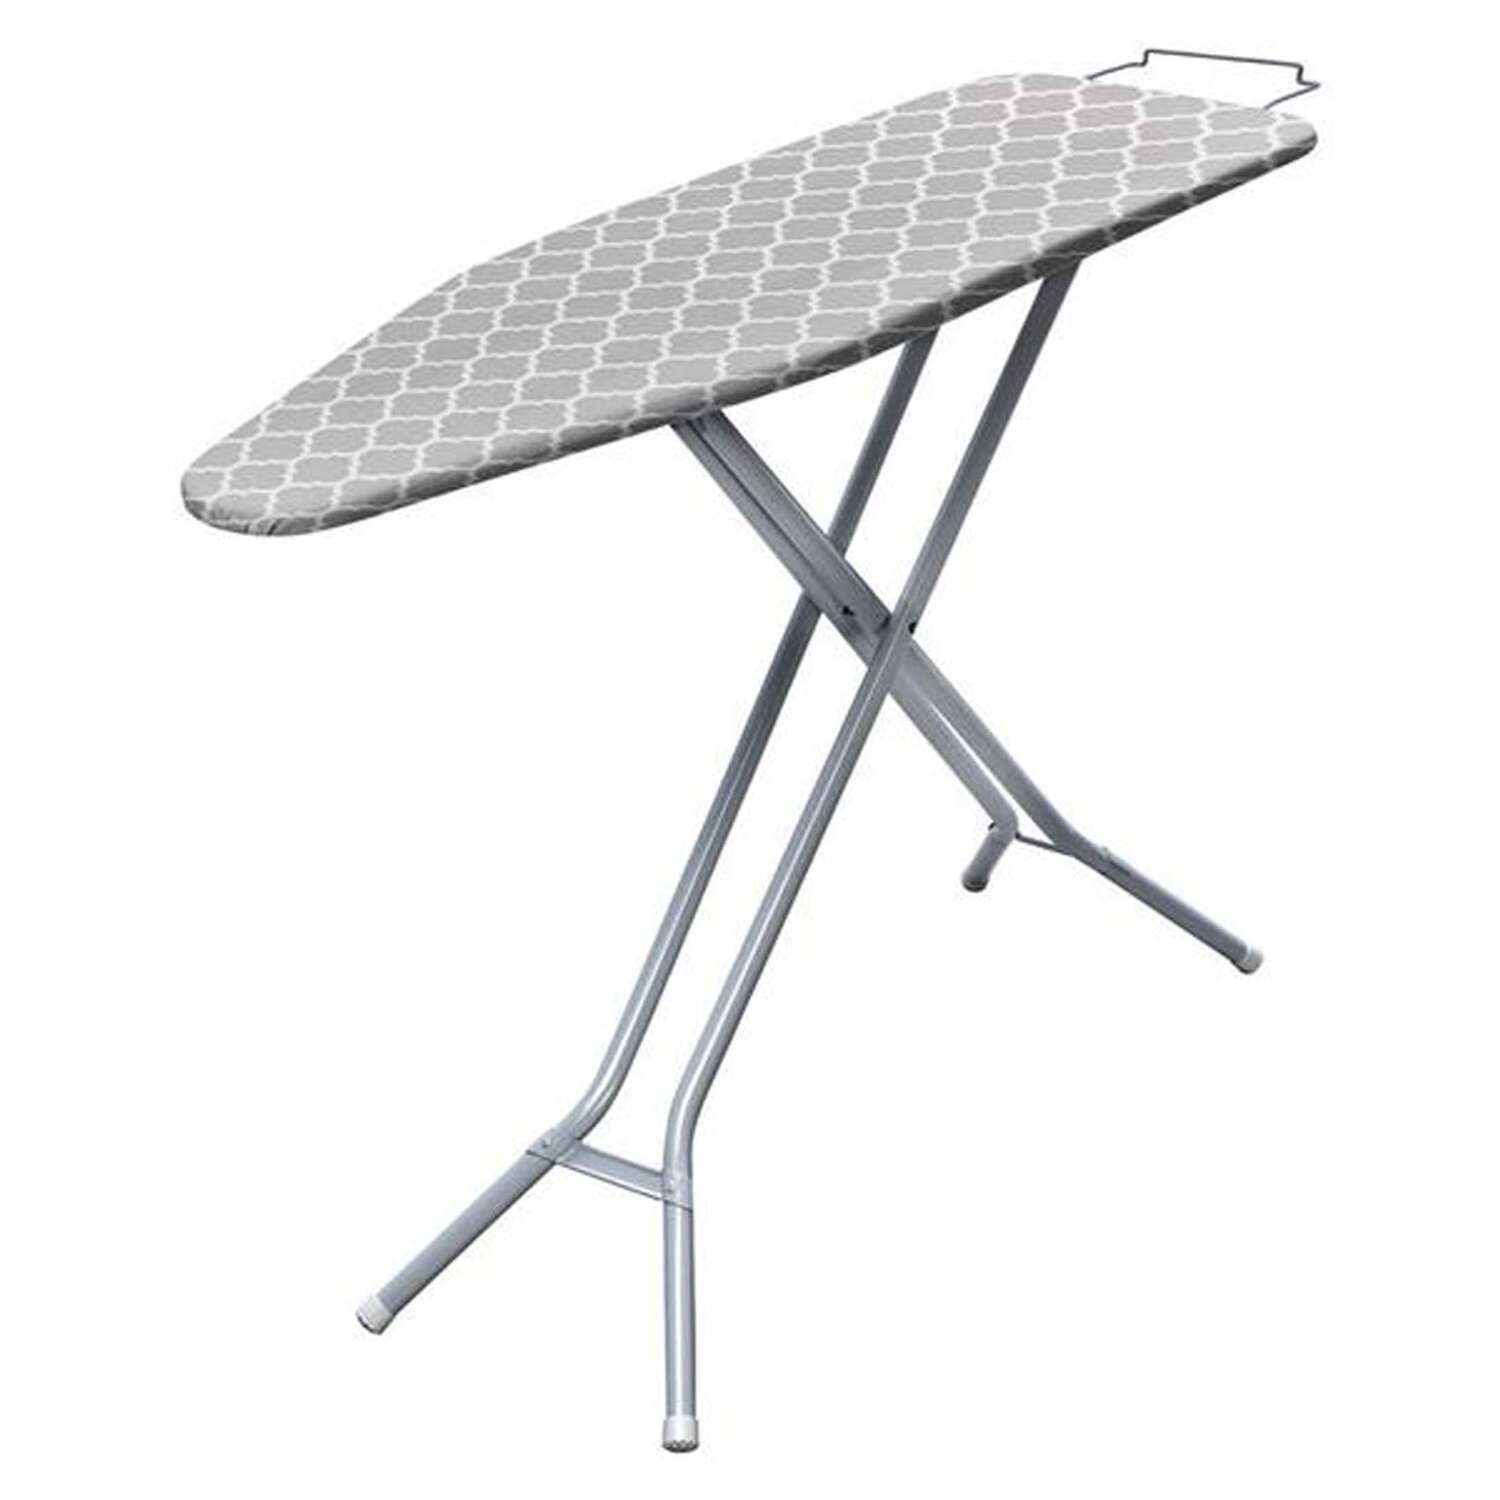 Homz  36 in. H Ironing Board with Iron Rest  Pad Included Steel